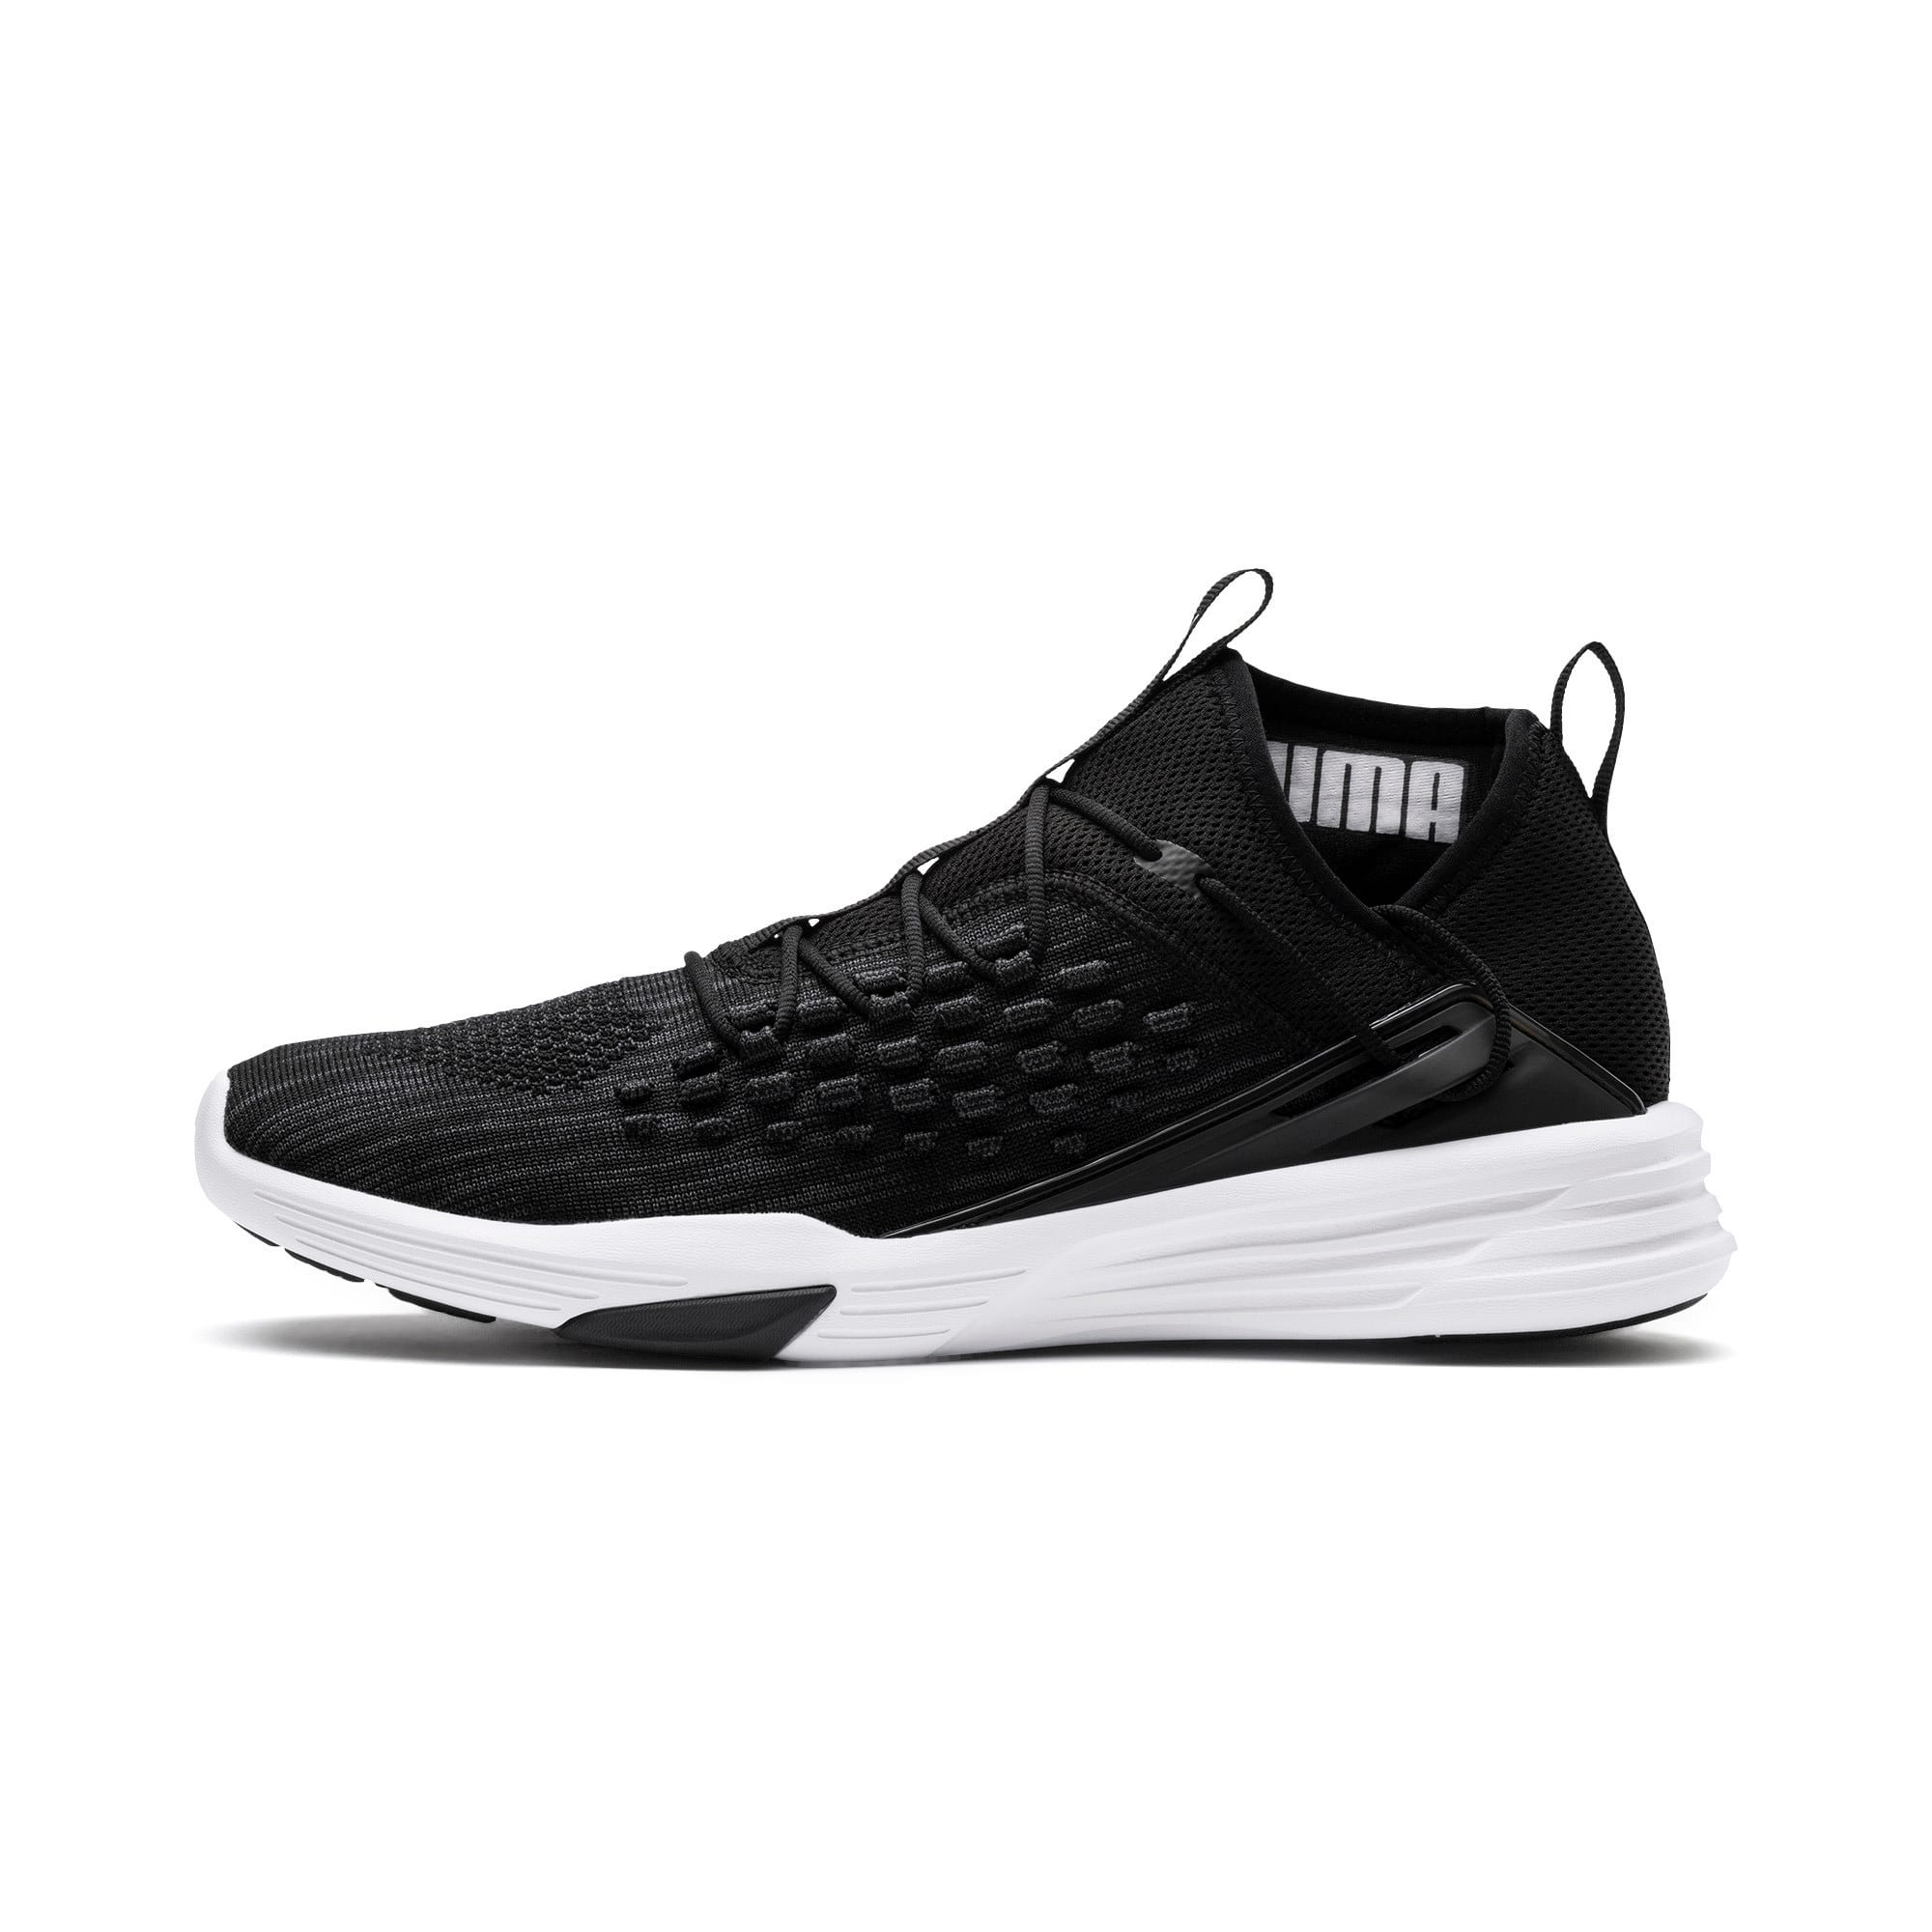 Thumbnail 1 of Mantra FUSEFIT Men's Sneakers, Puma Black-Puma White, medium